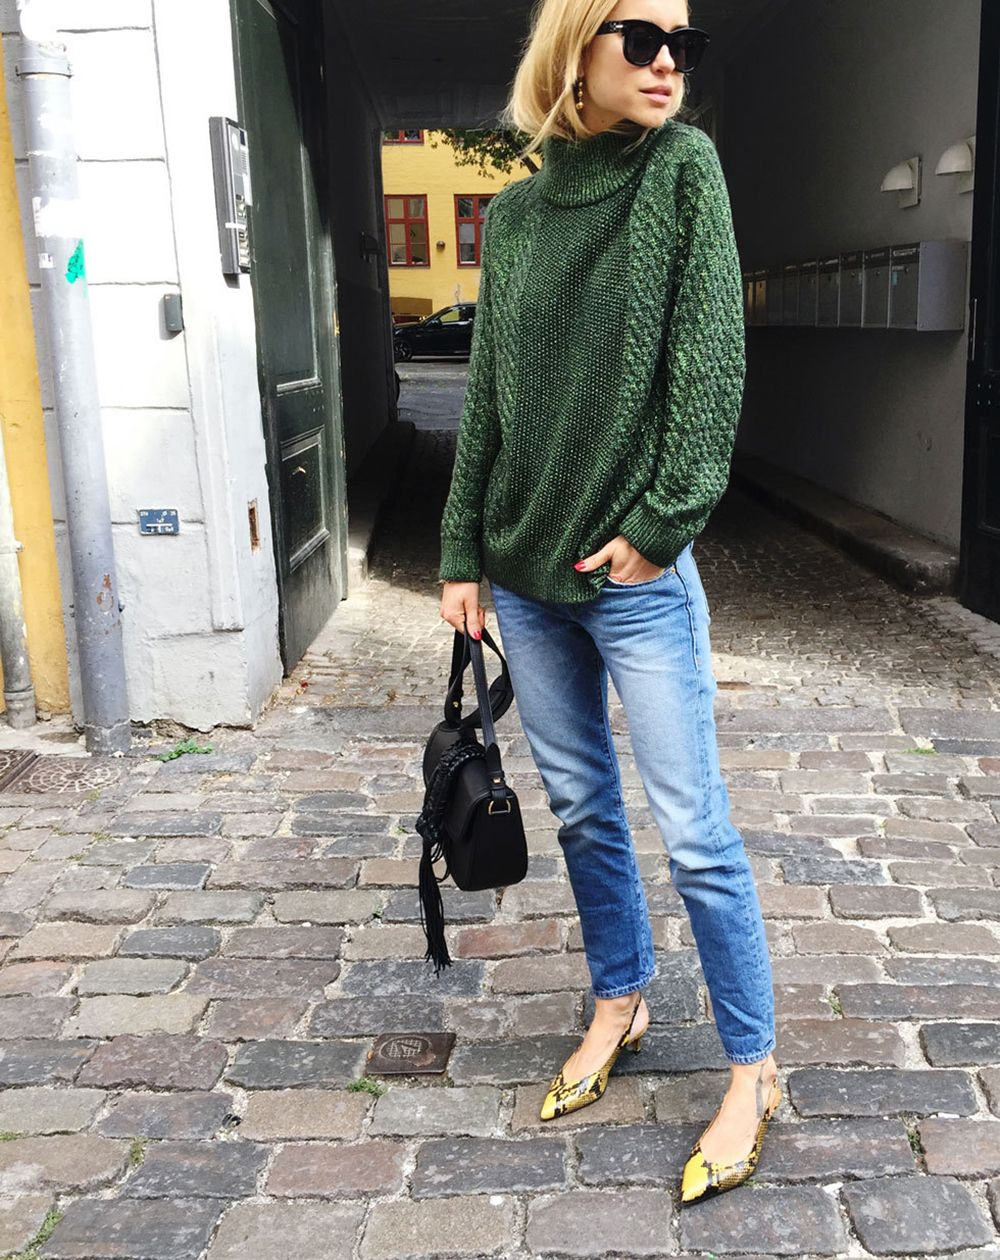 6 Fashion Blogger Fall Looks To Be Inspired By And Shop This Weekend —  Bloglovin —the blog be3ff4f22